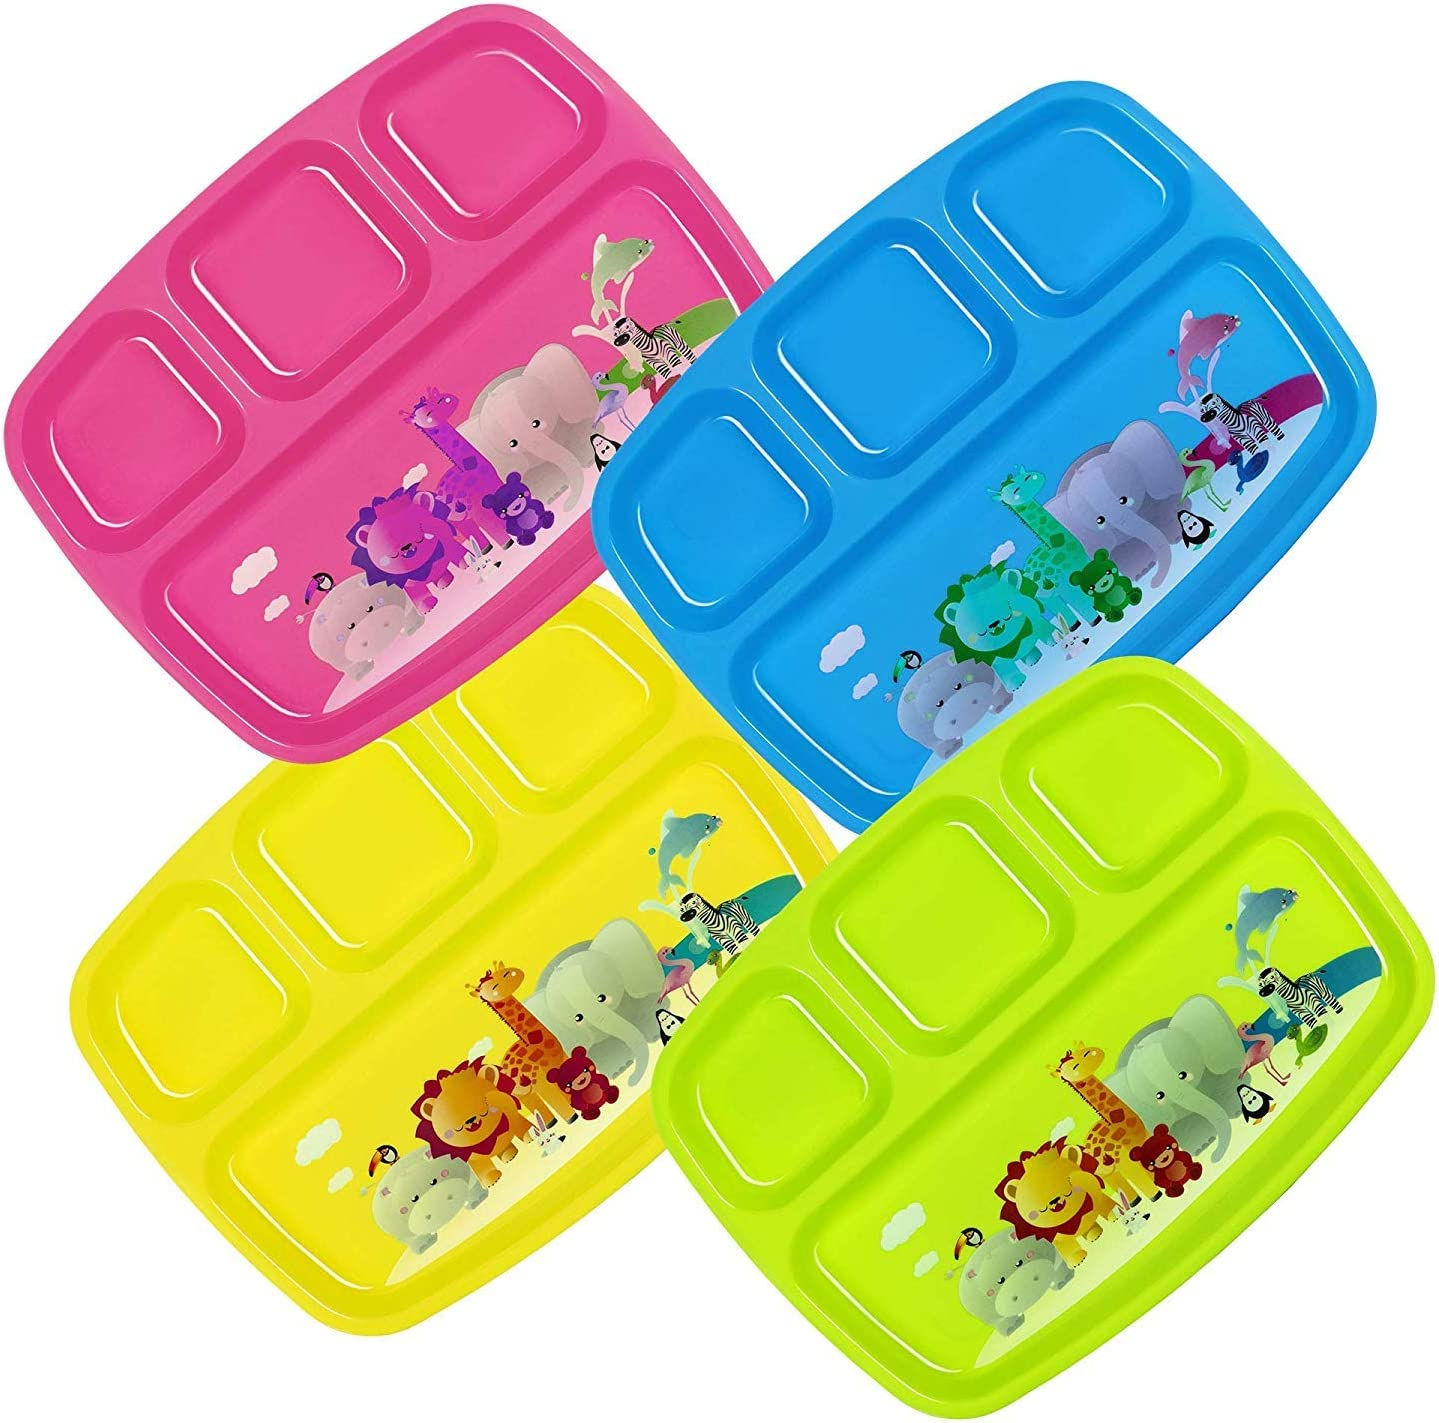 Plaskidy Kids Plastic 4-Compartment Plates Dividers Ranking TOP17 Shipping included Set With - o